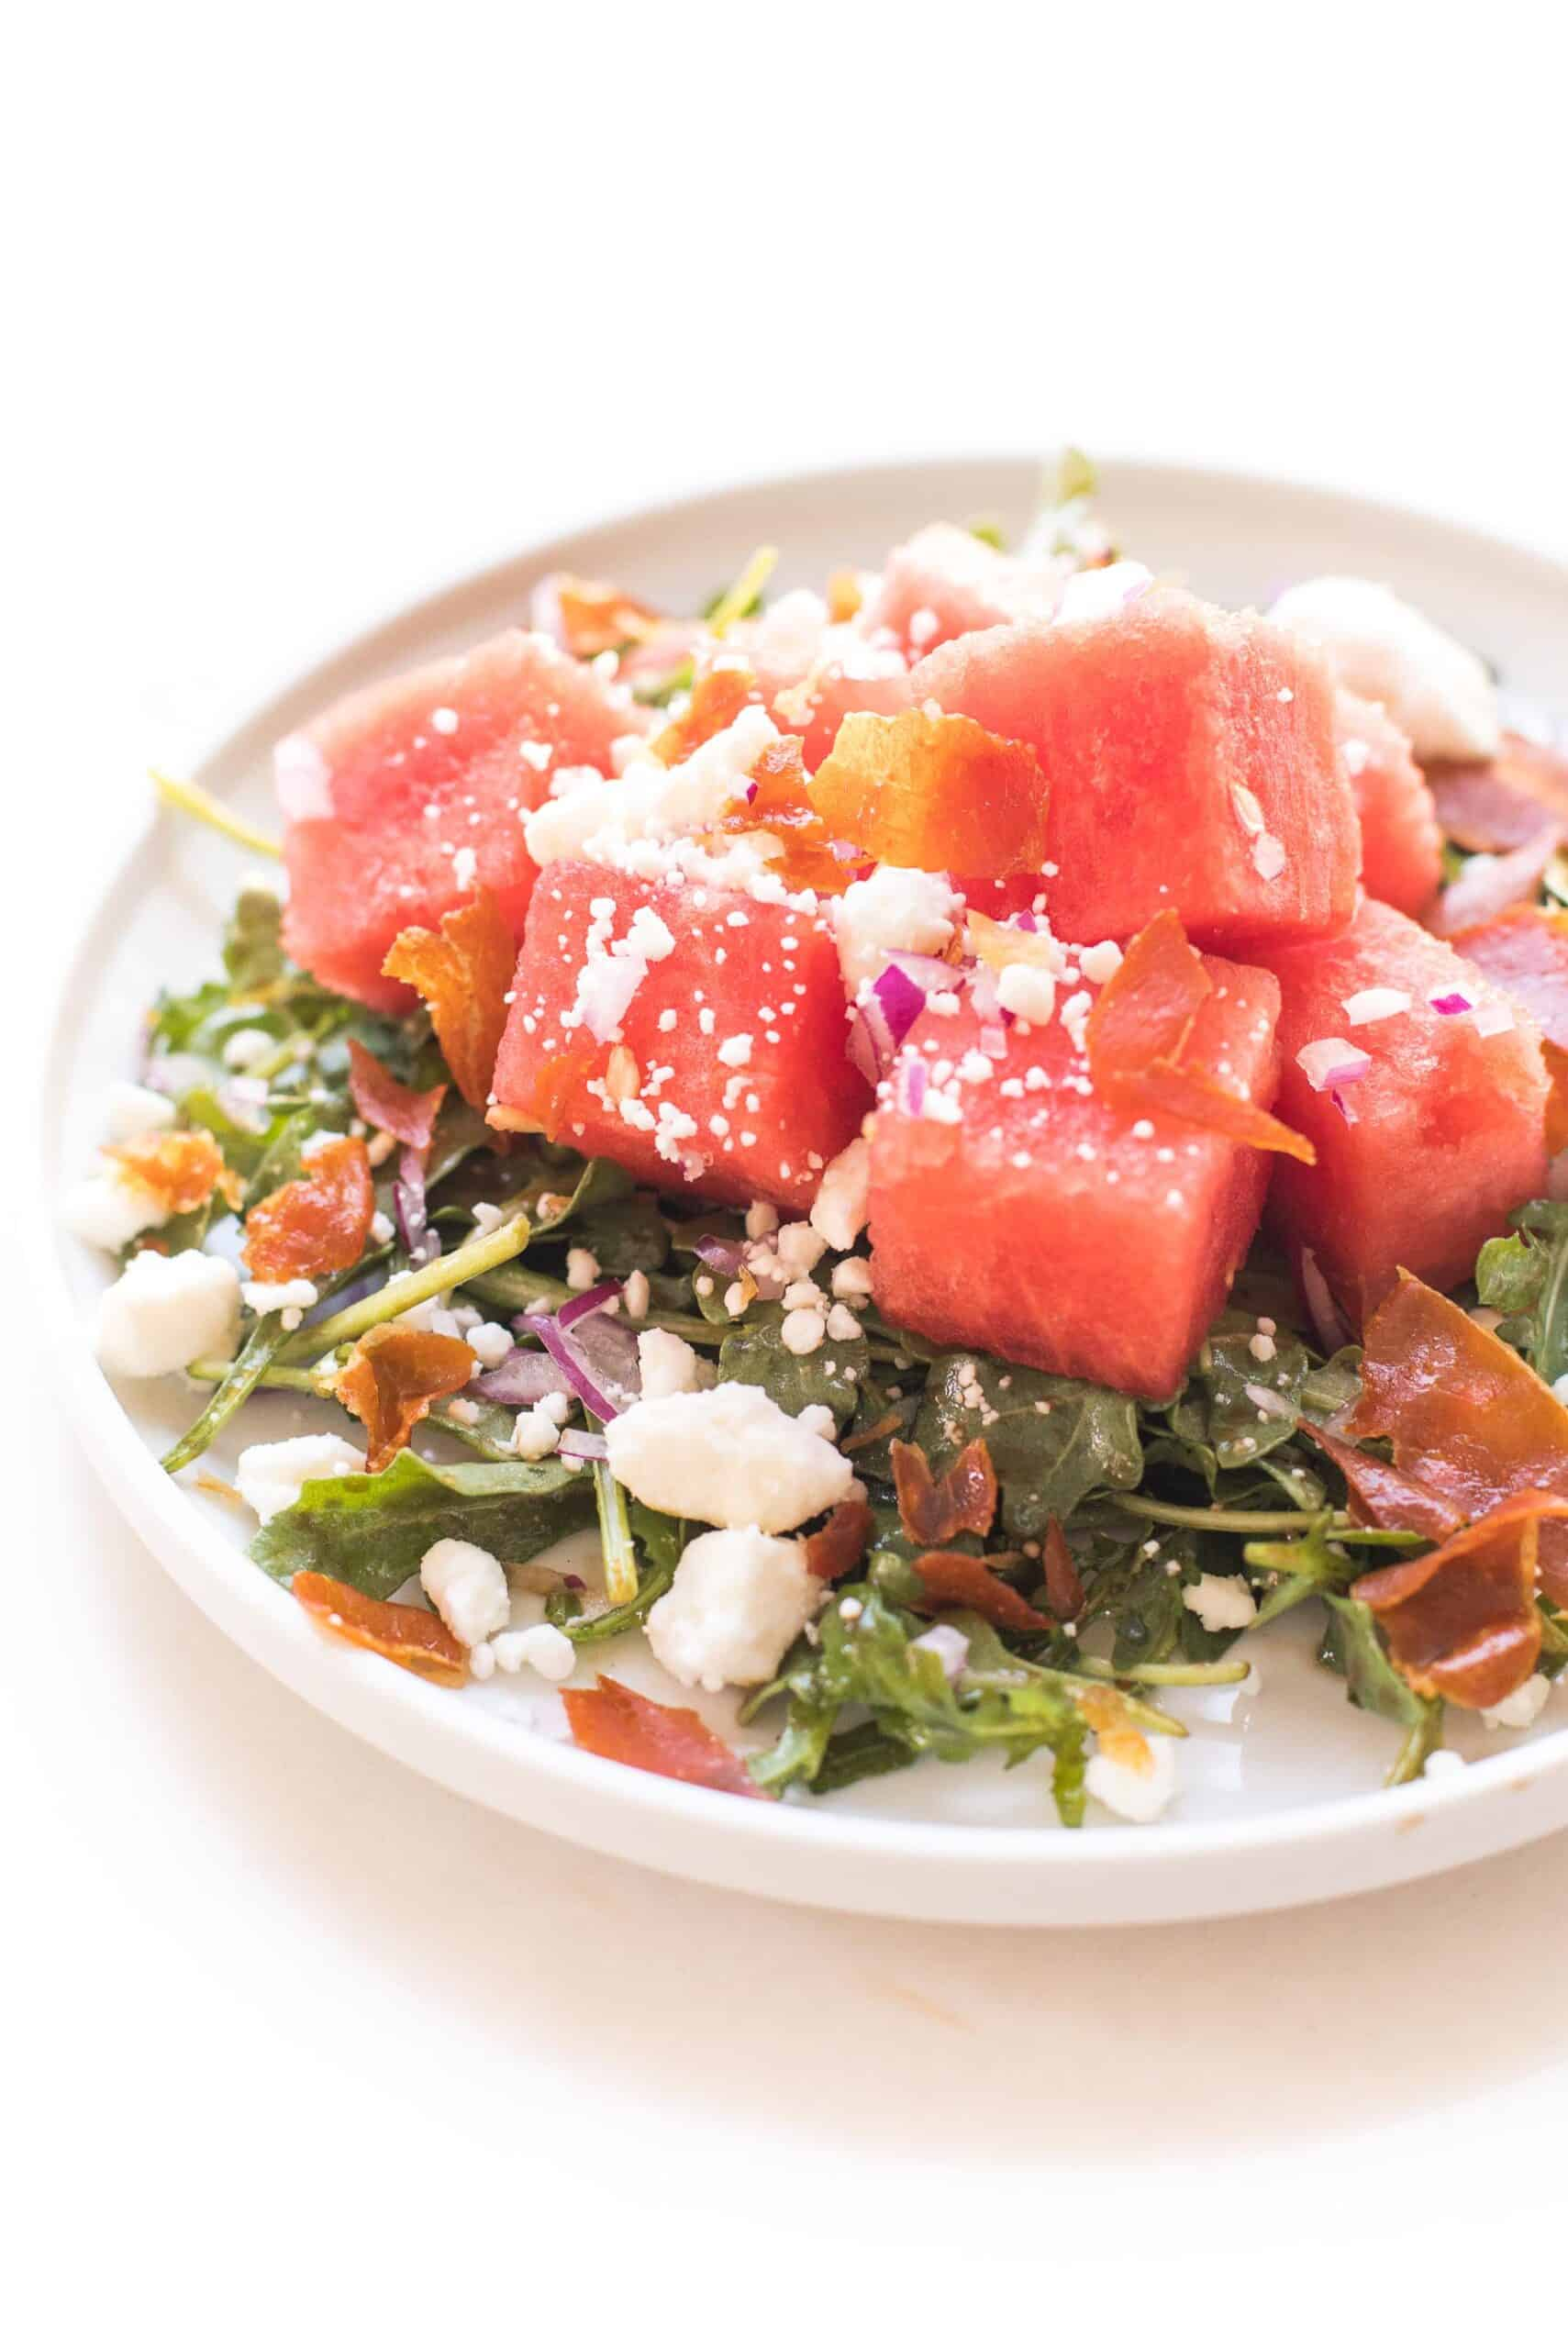 WATERMELON FETA SALAD WITH ARUGULA, CRISPY PROSCIUTTO AND RED ONION ON A WHITE PLATE